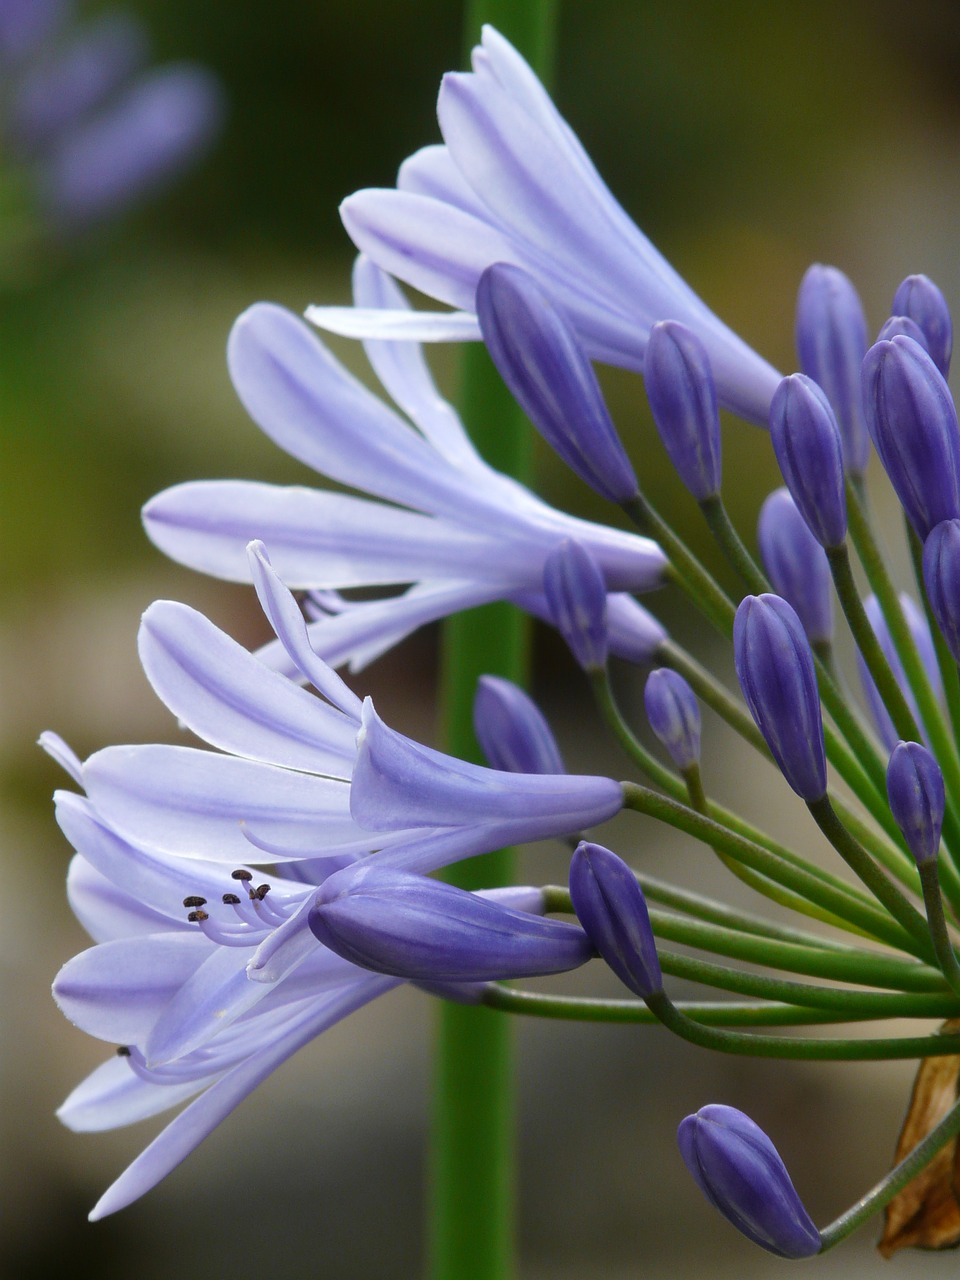 agapanthus jewelry lilies greenhouse agapanthoideae free photo